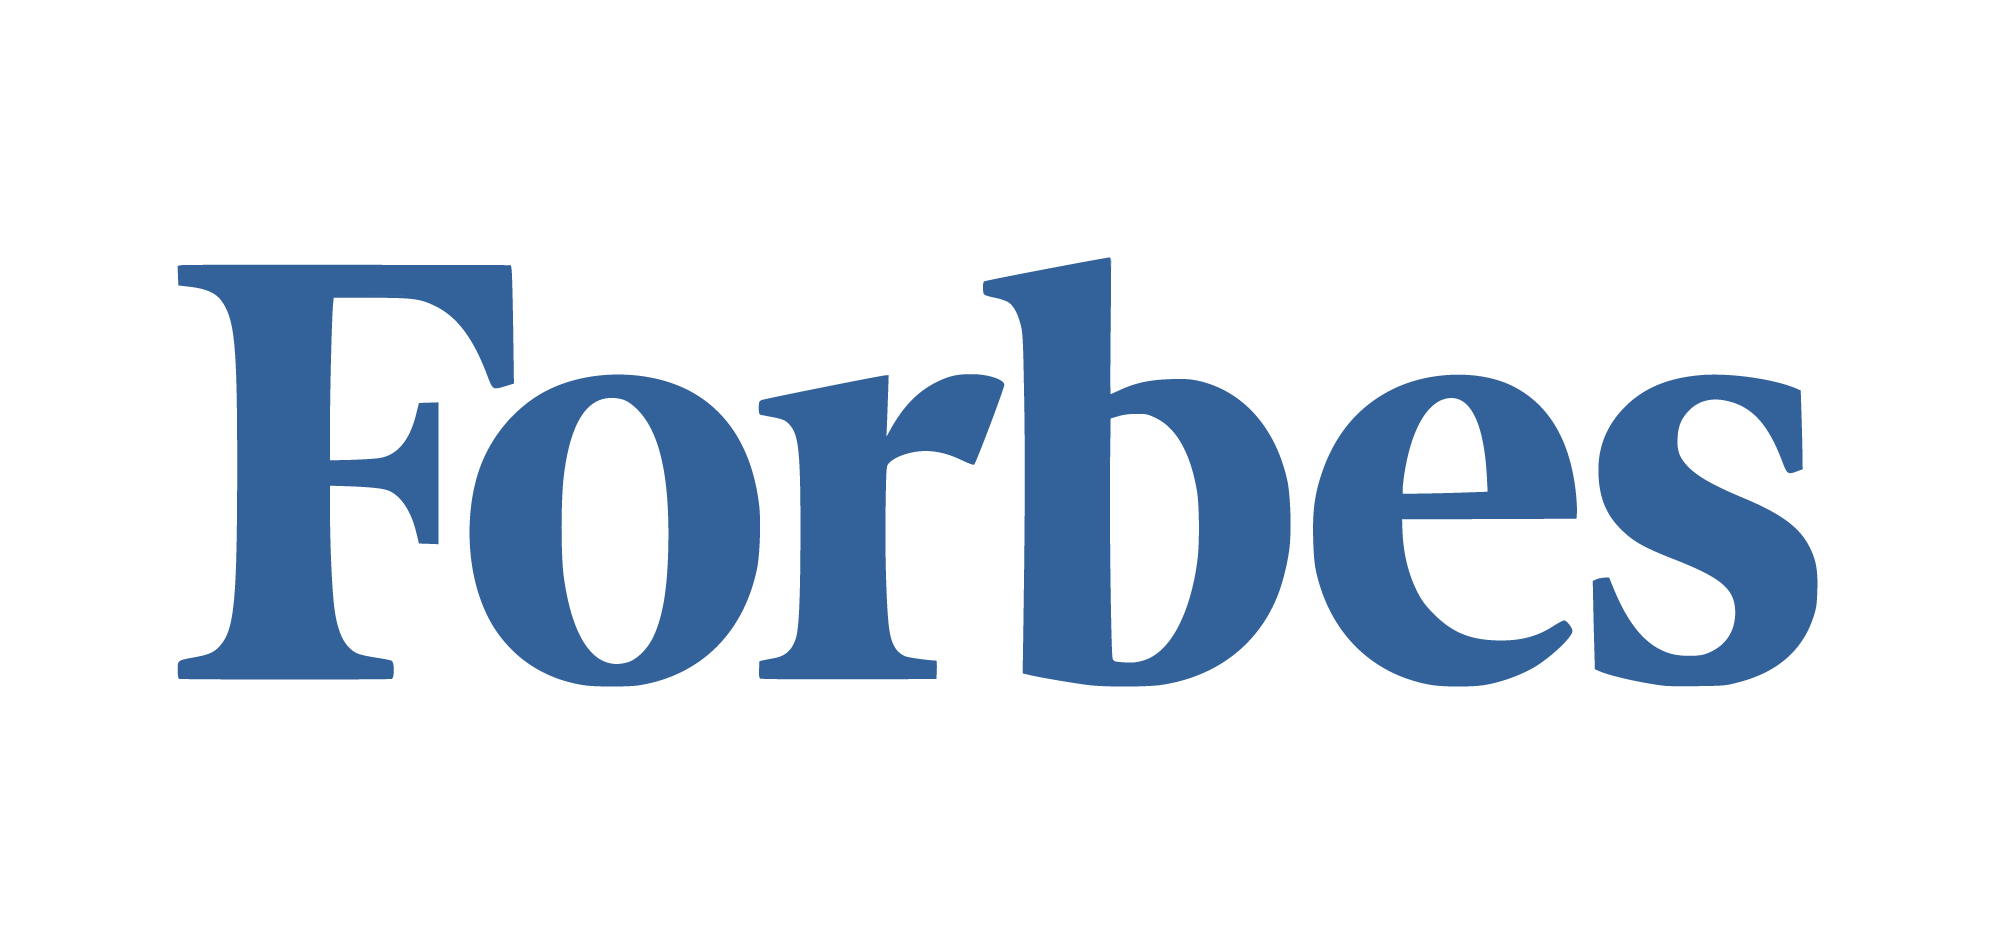 Forbes Logo Vector Wallpaper